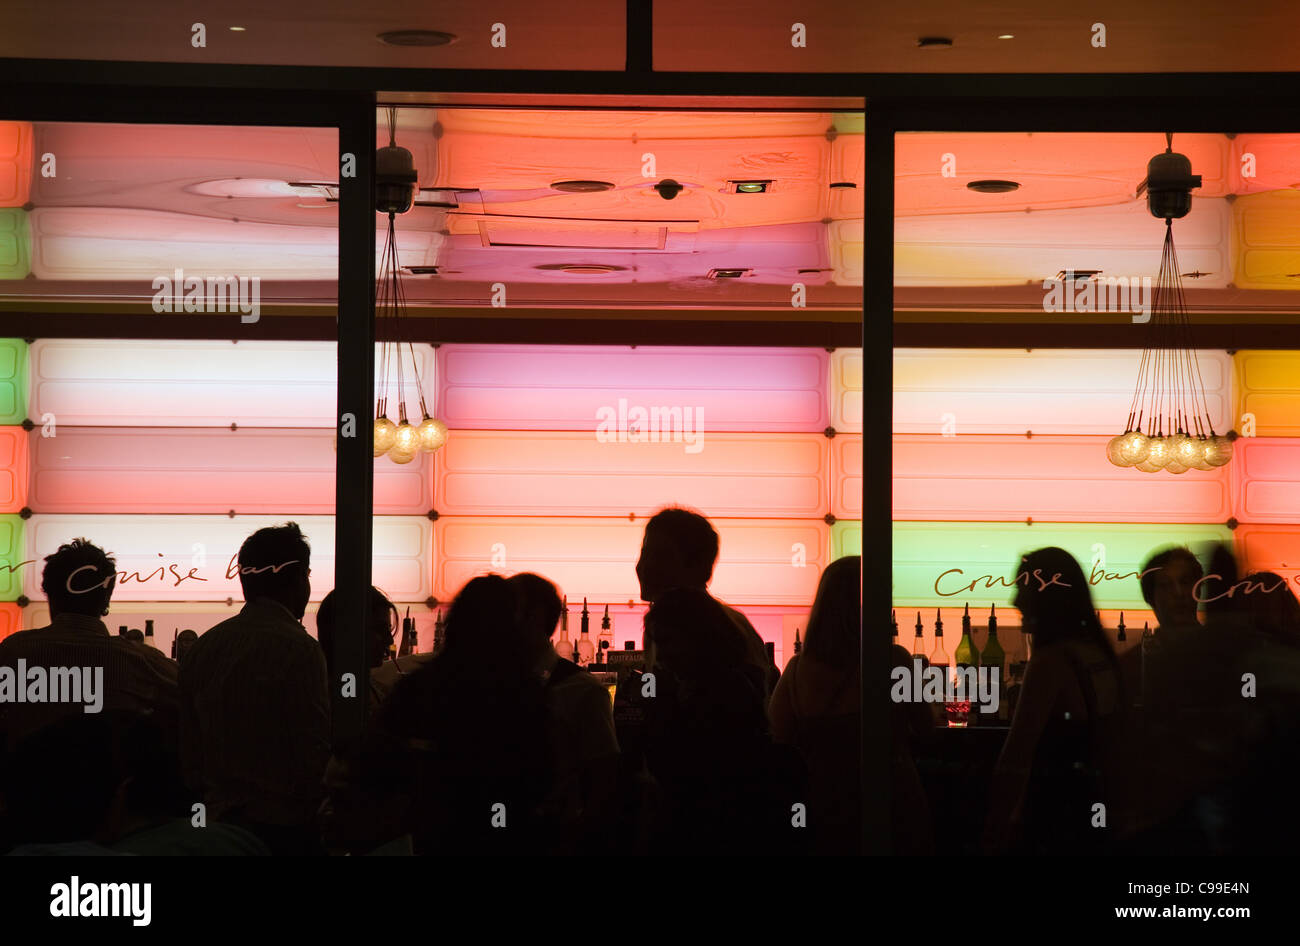 Nightlife at the Cruise Bar at Circular Quay. The Rocks, Sydney, New South Wales, Australia - Stock Image